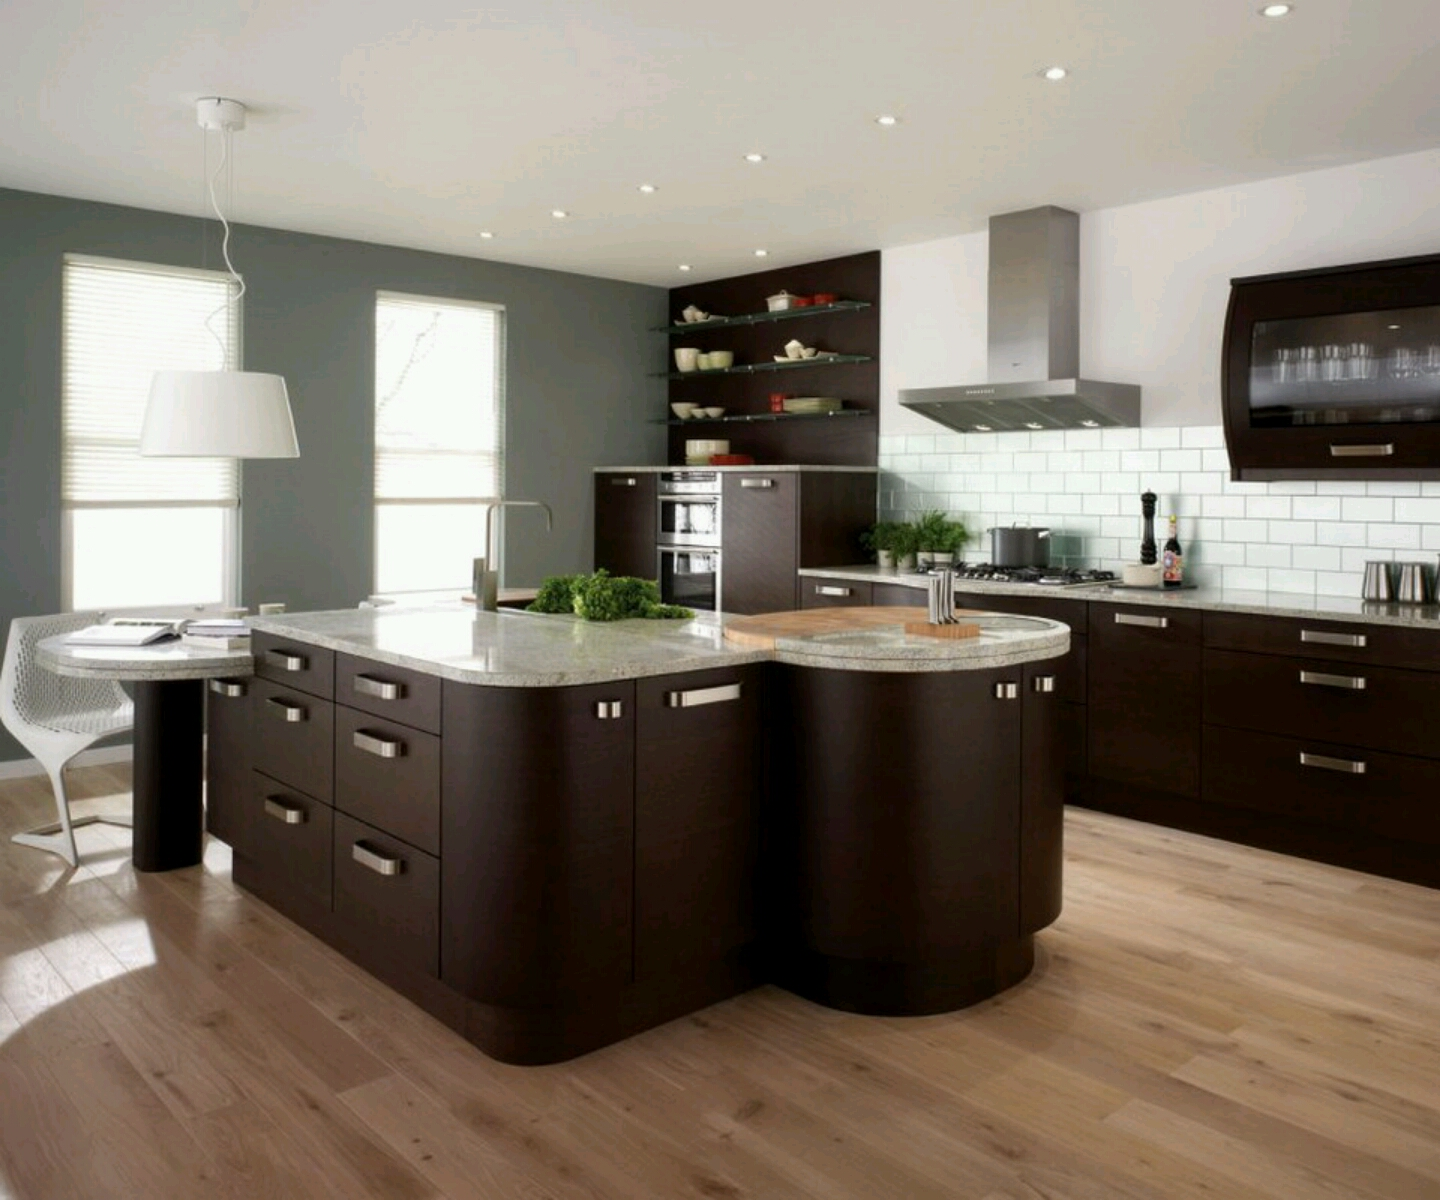 Pictures Of Modern Kitchens: External Home Design, Interior